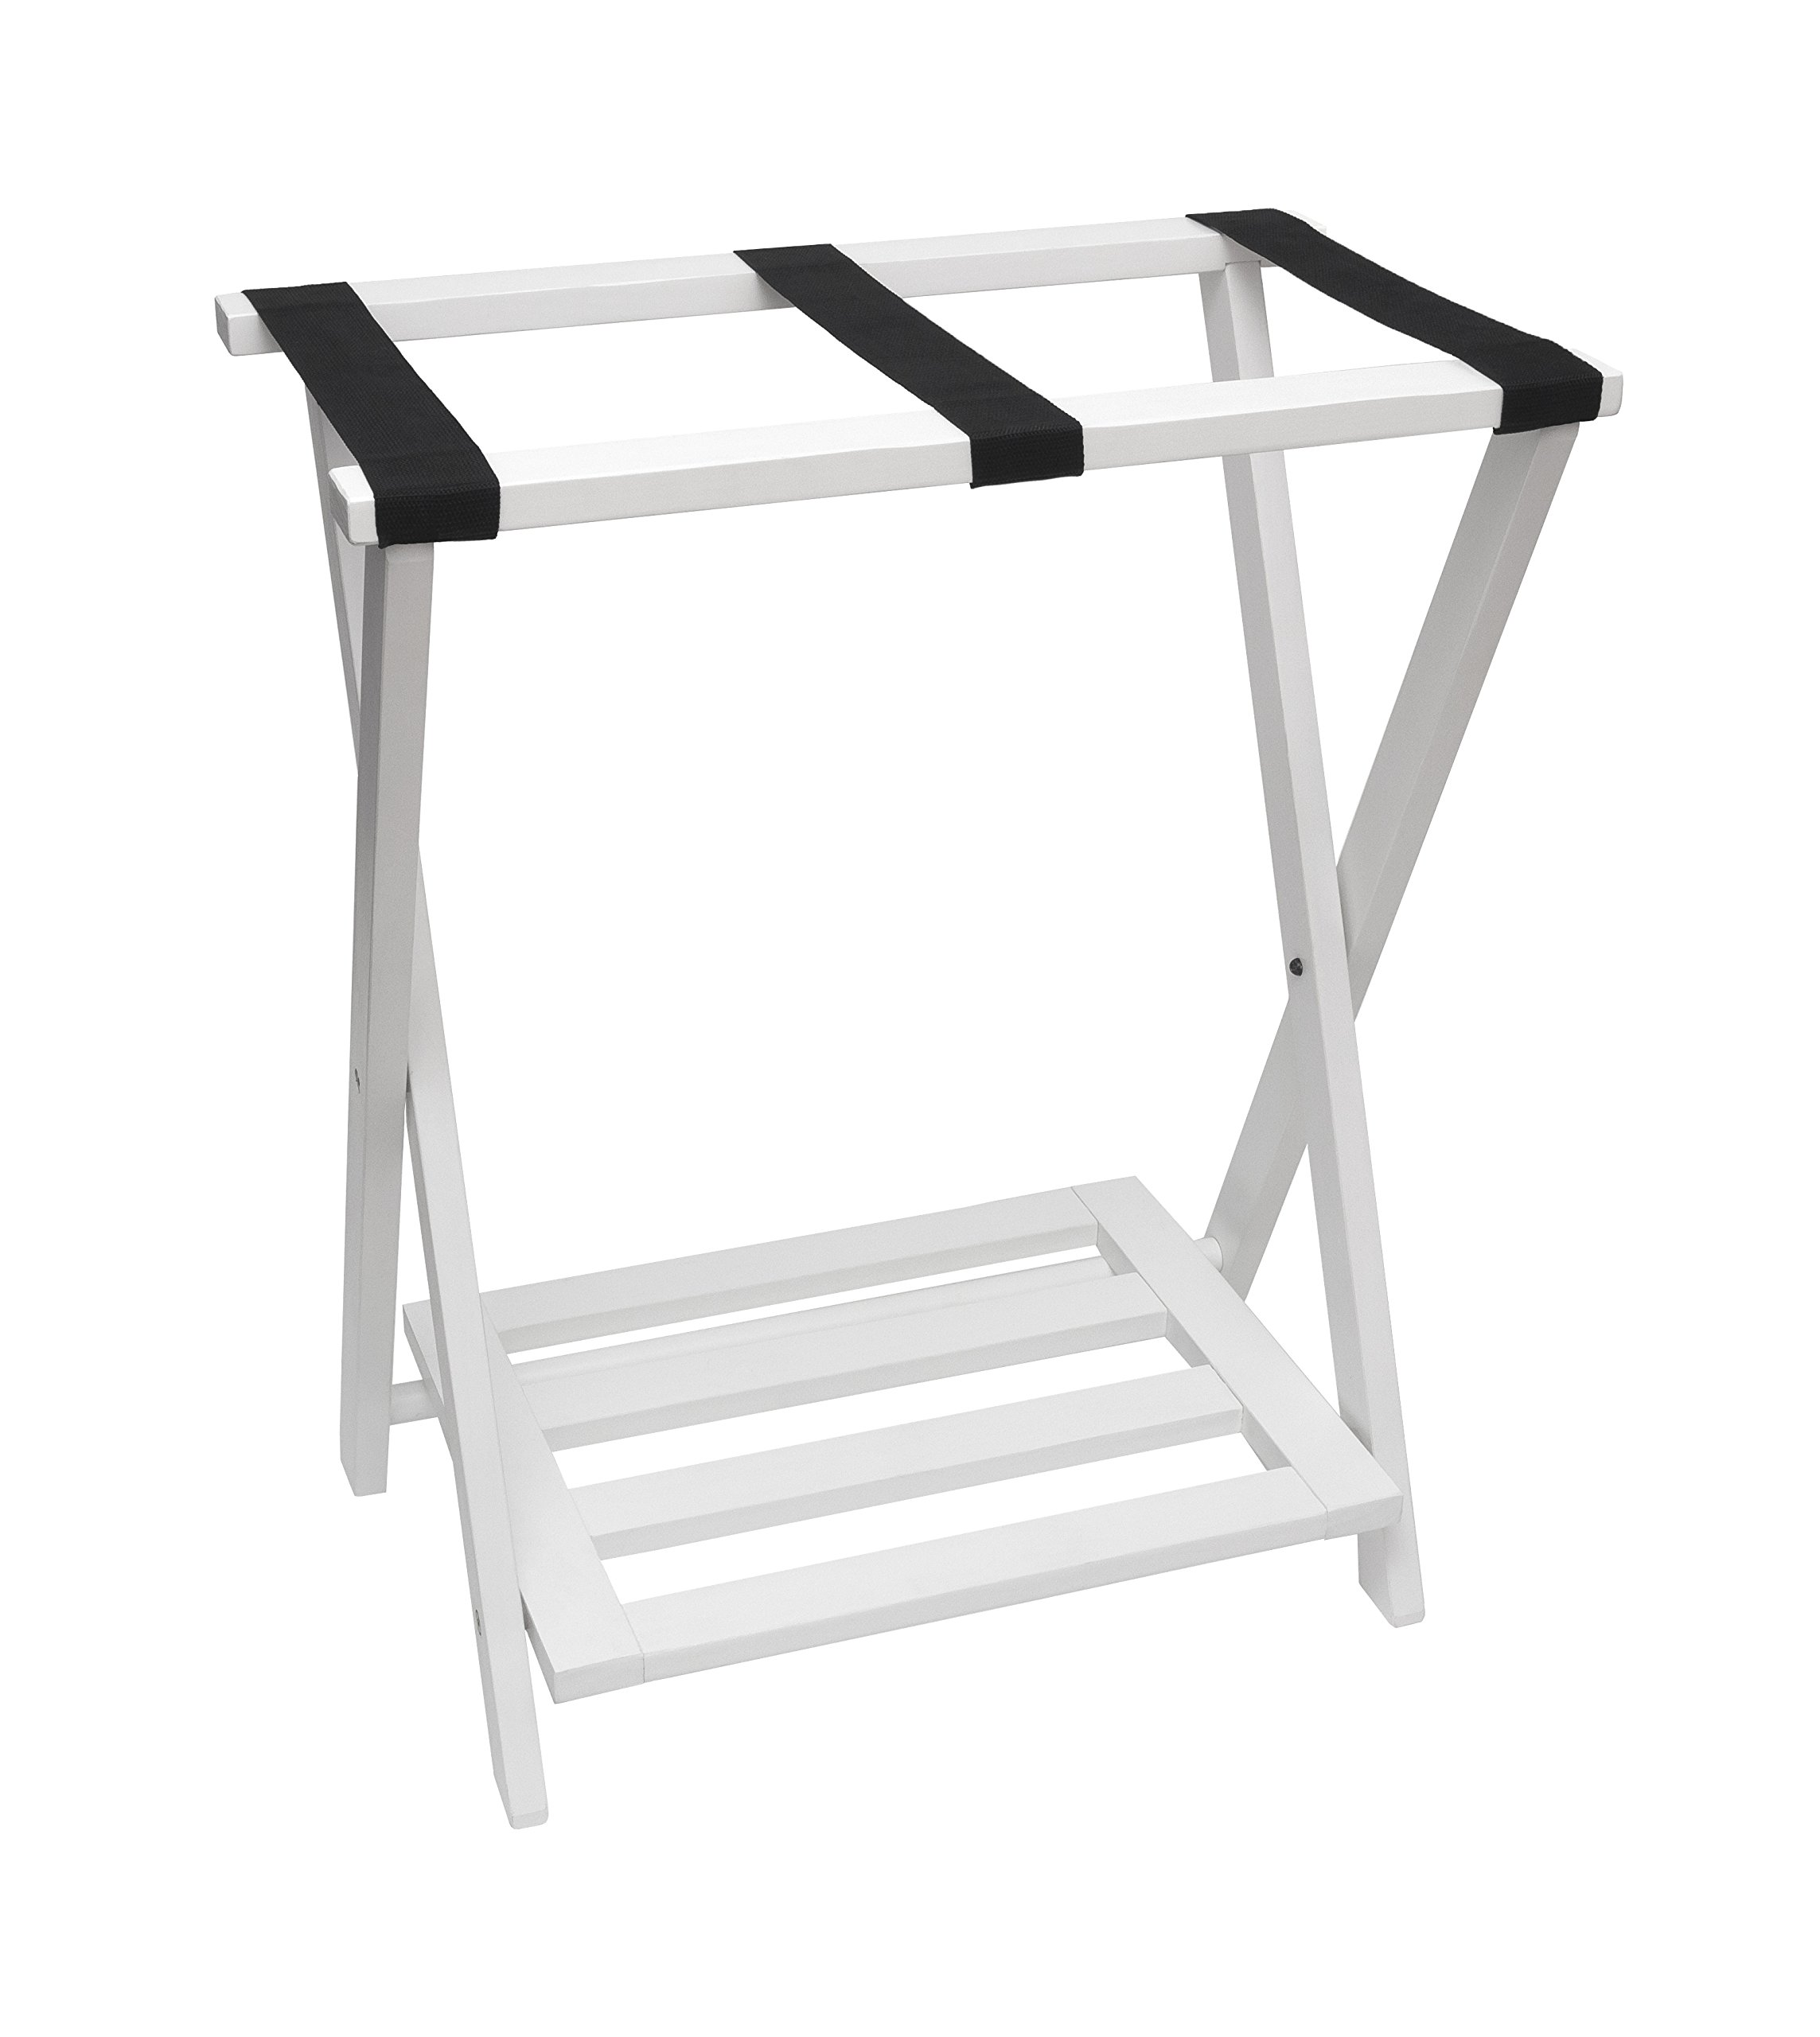 Lipper International 502W Right Height Folding Luggage Rack with Bottom Shelf, White Finish by Lipper International